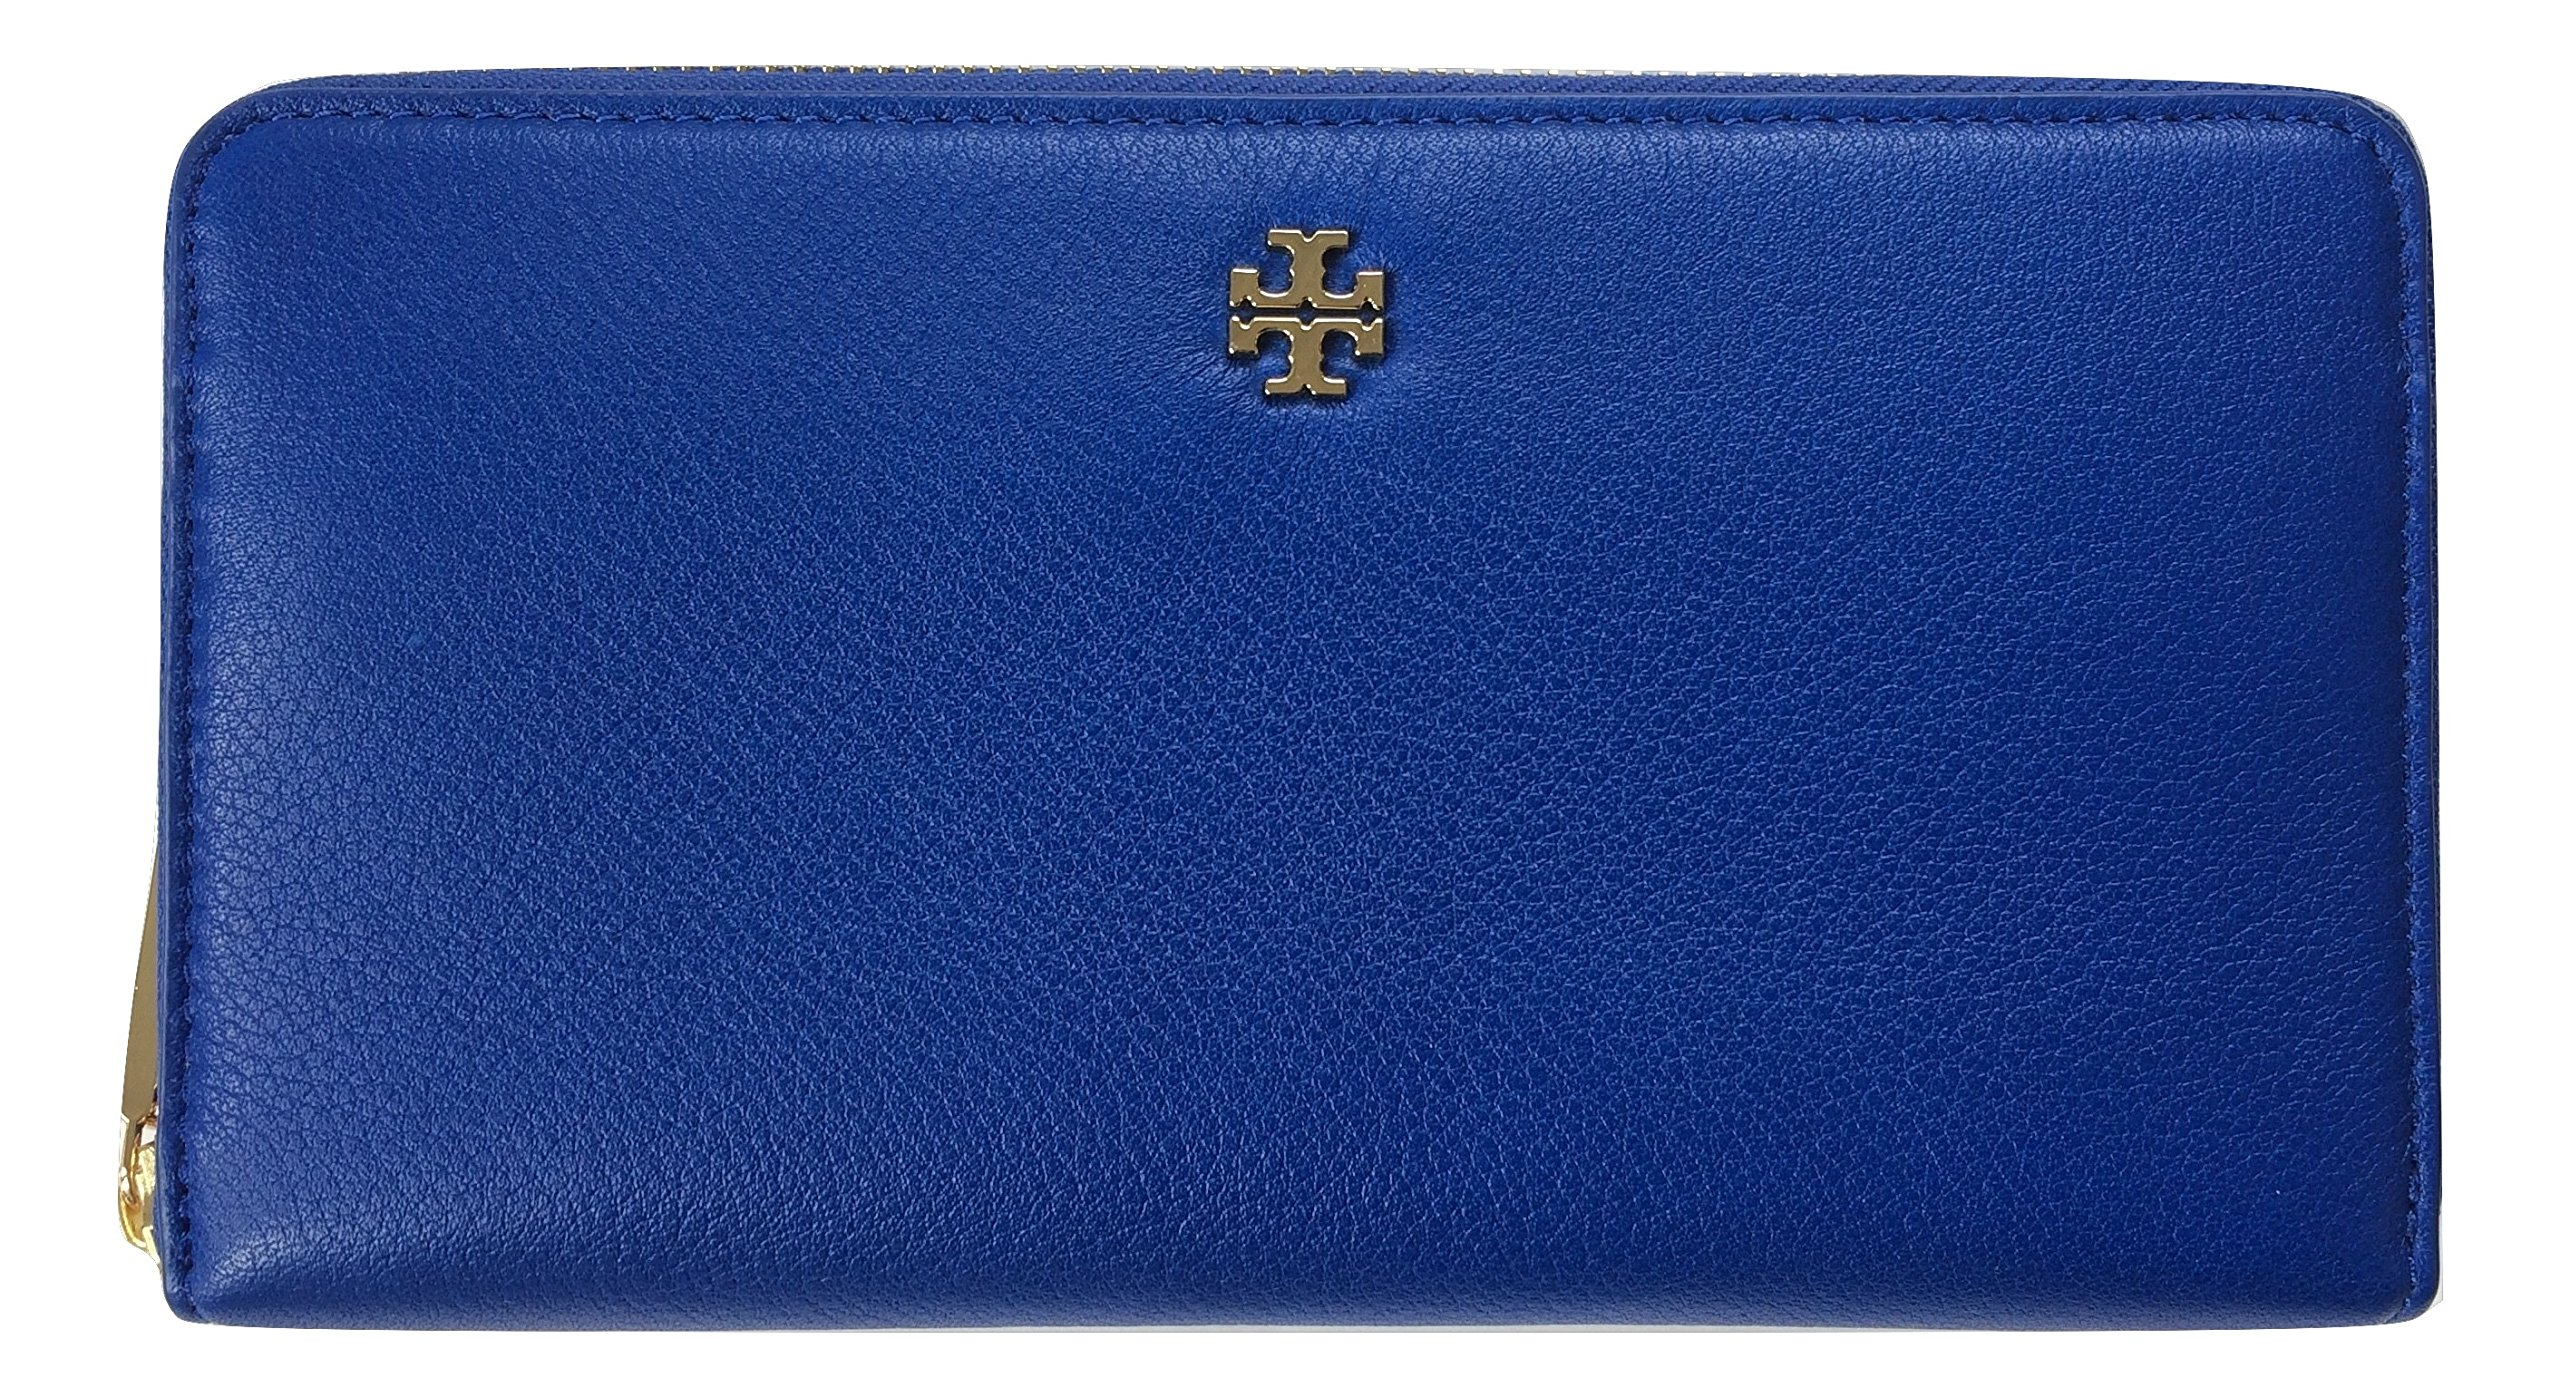 Tory Burch Mercer Zip Soft Pebbled Leather Continental Wallet Style No. 31412 (Jelly Blue) by Tory Burch